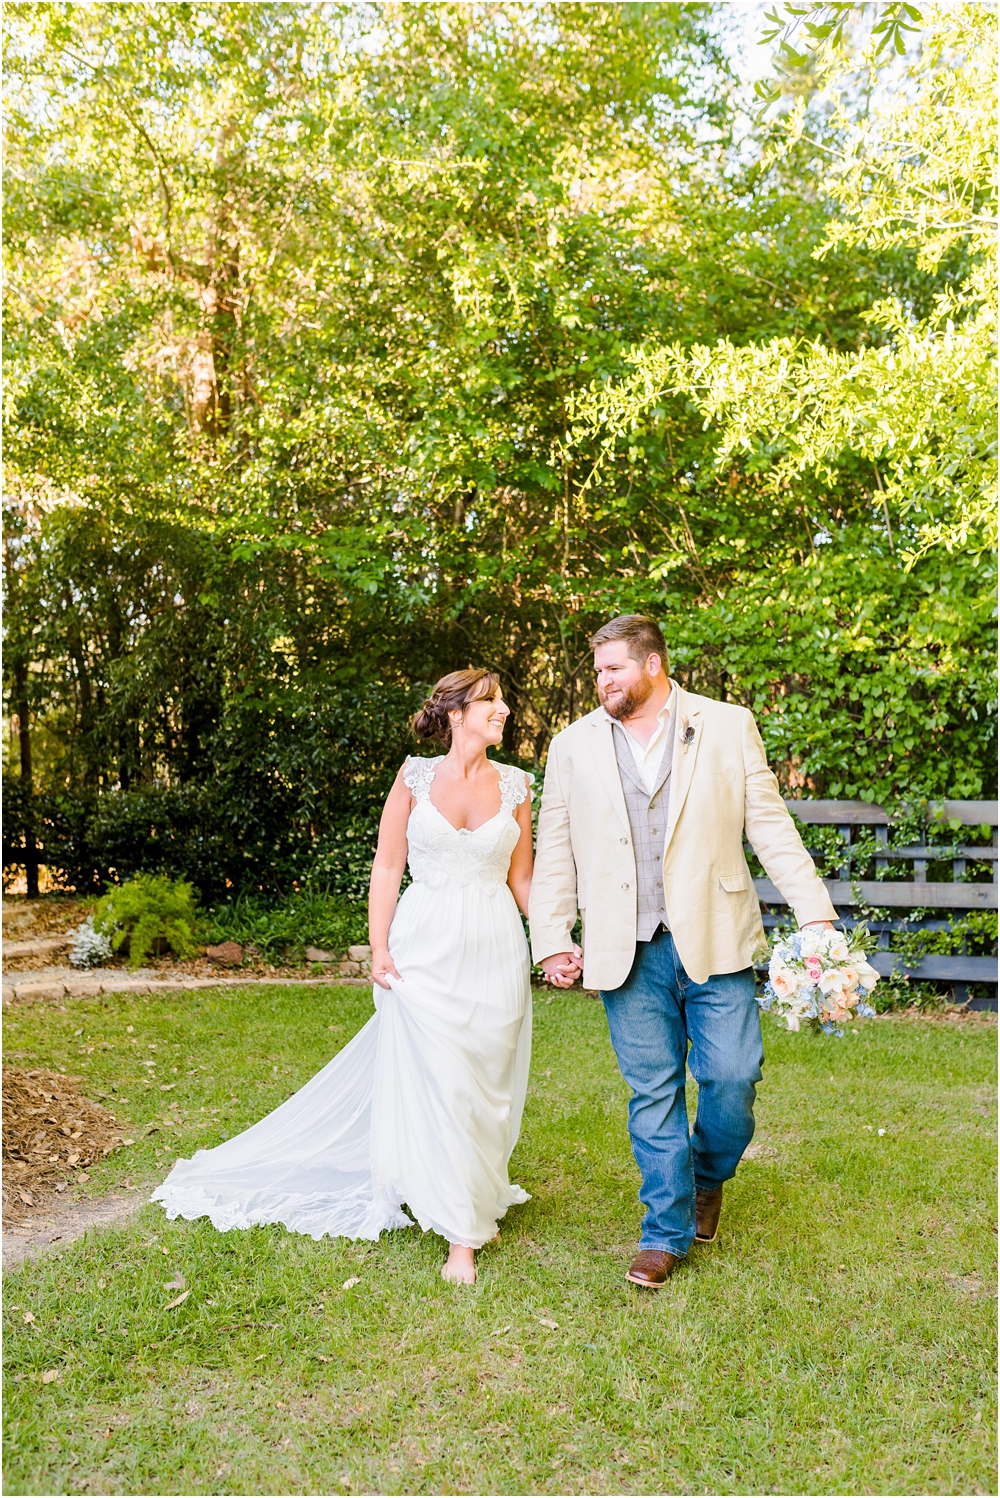 king-southern-lea-farms-vernon-florida-wedding-kiersten-stevenson-photography-(328-of-578).JPG